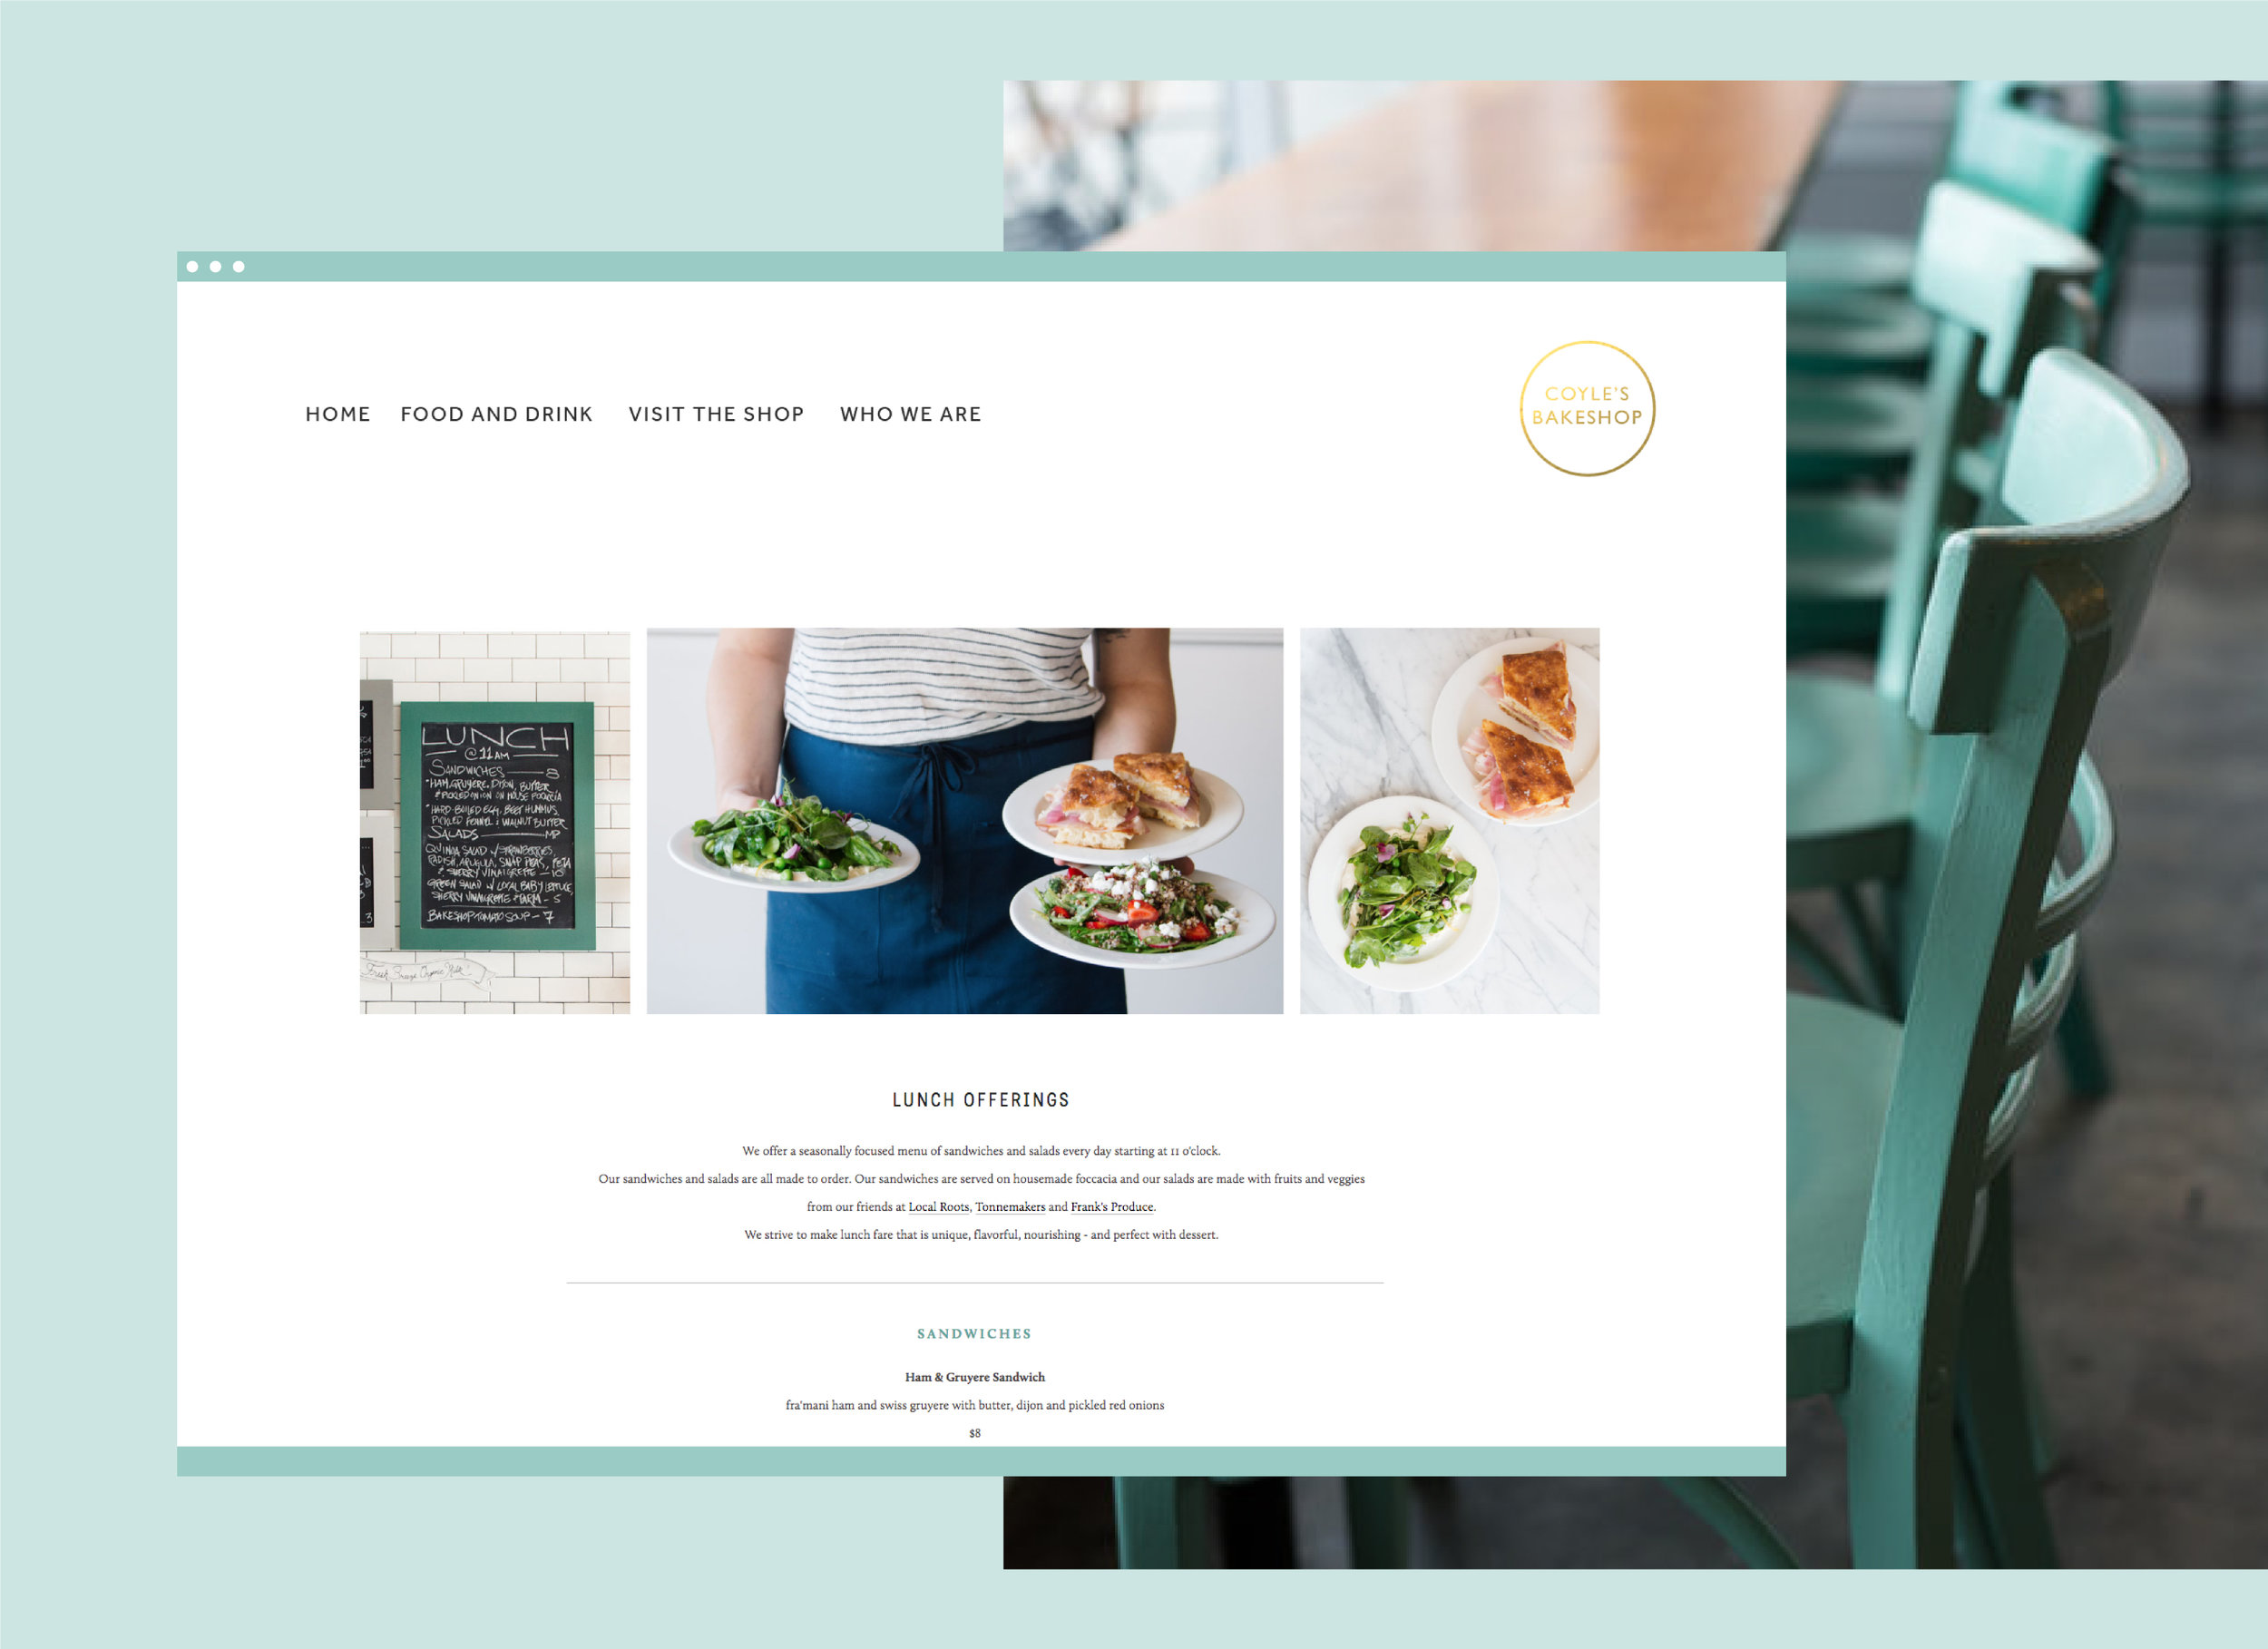 coyles bakeshop website design mockup